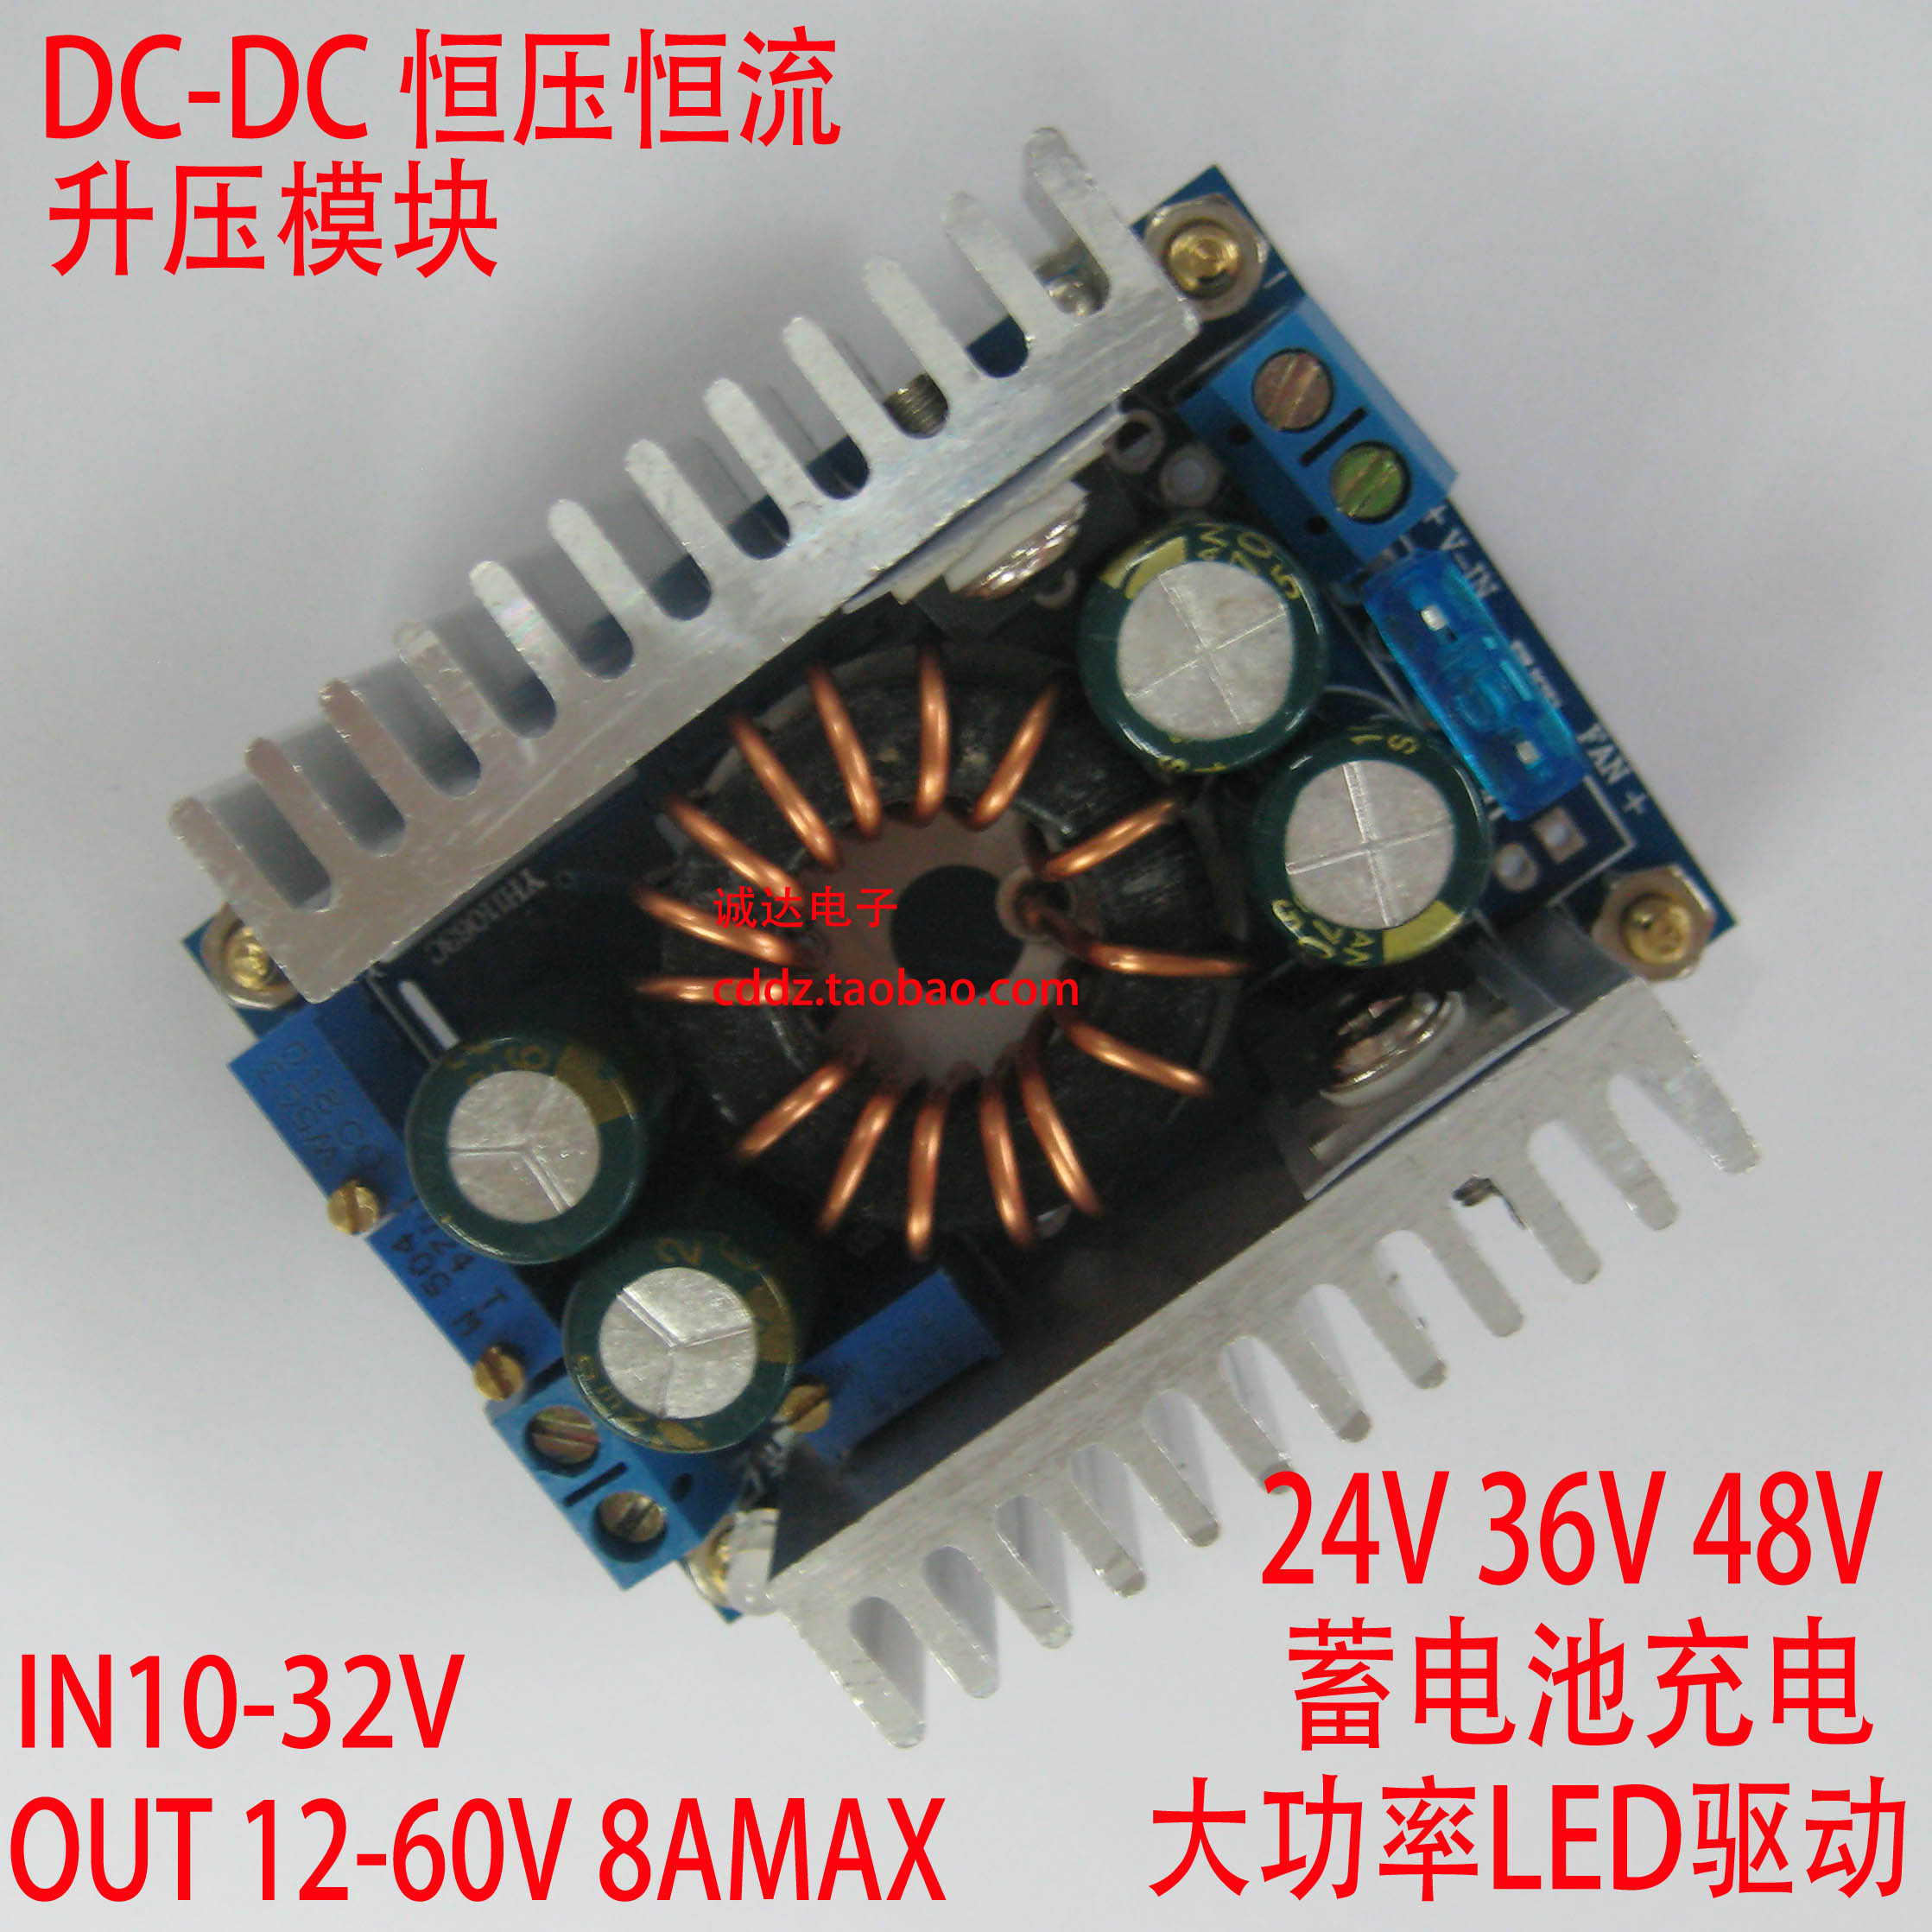 DC-DC adjustable step-up constant current 10-32 converter 12-60V solar voltage regulated LED power supply module 1pcs 1500w 30a dc dc cc cv boost converter step up power supply charger adjustable dc dc booster adapter 10 60v to 12 90v module